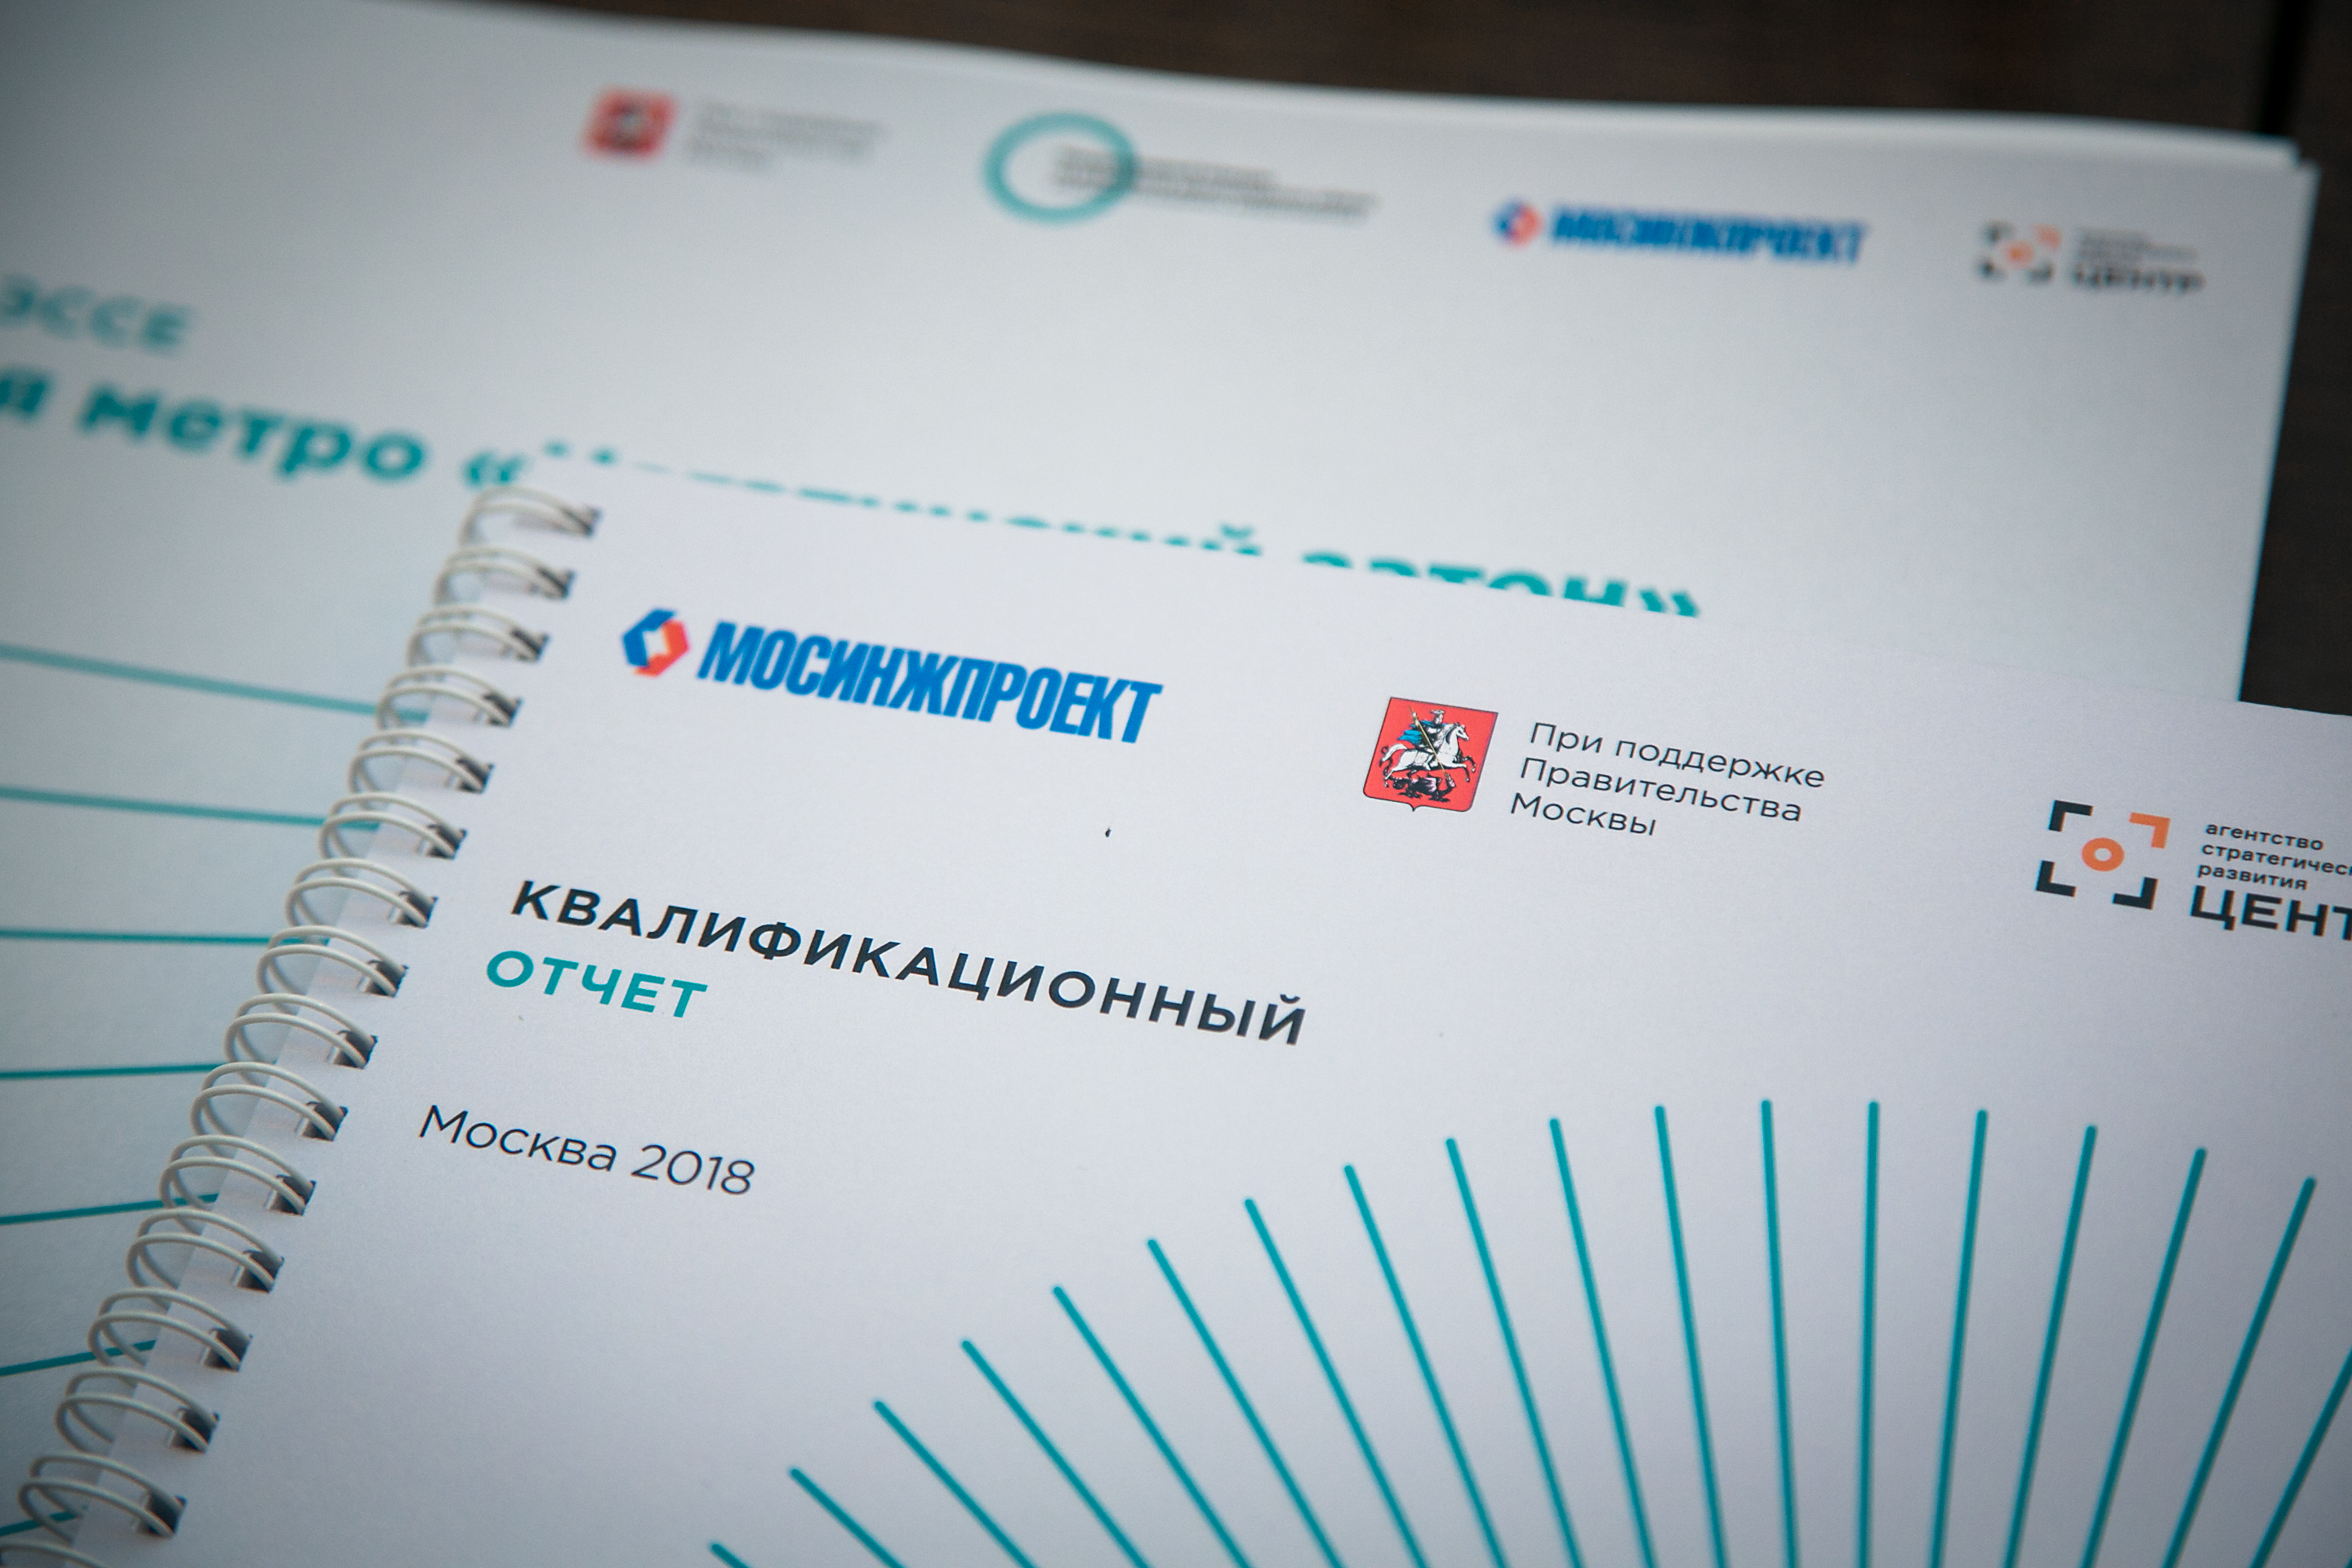 On March 1, reception of the competition works was completed